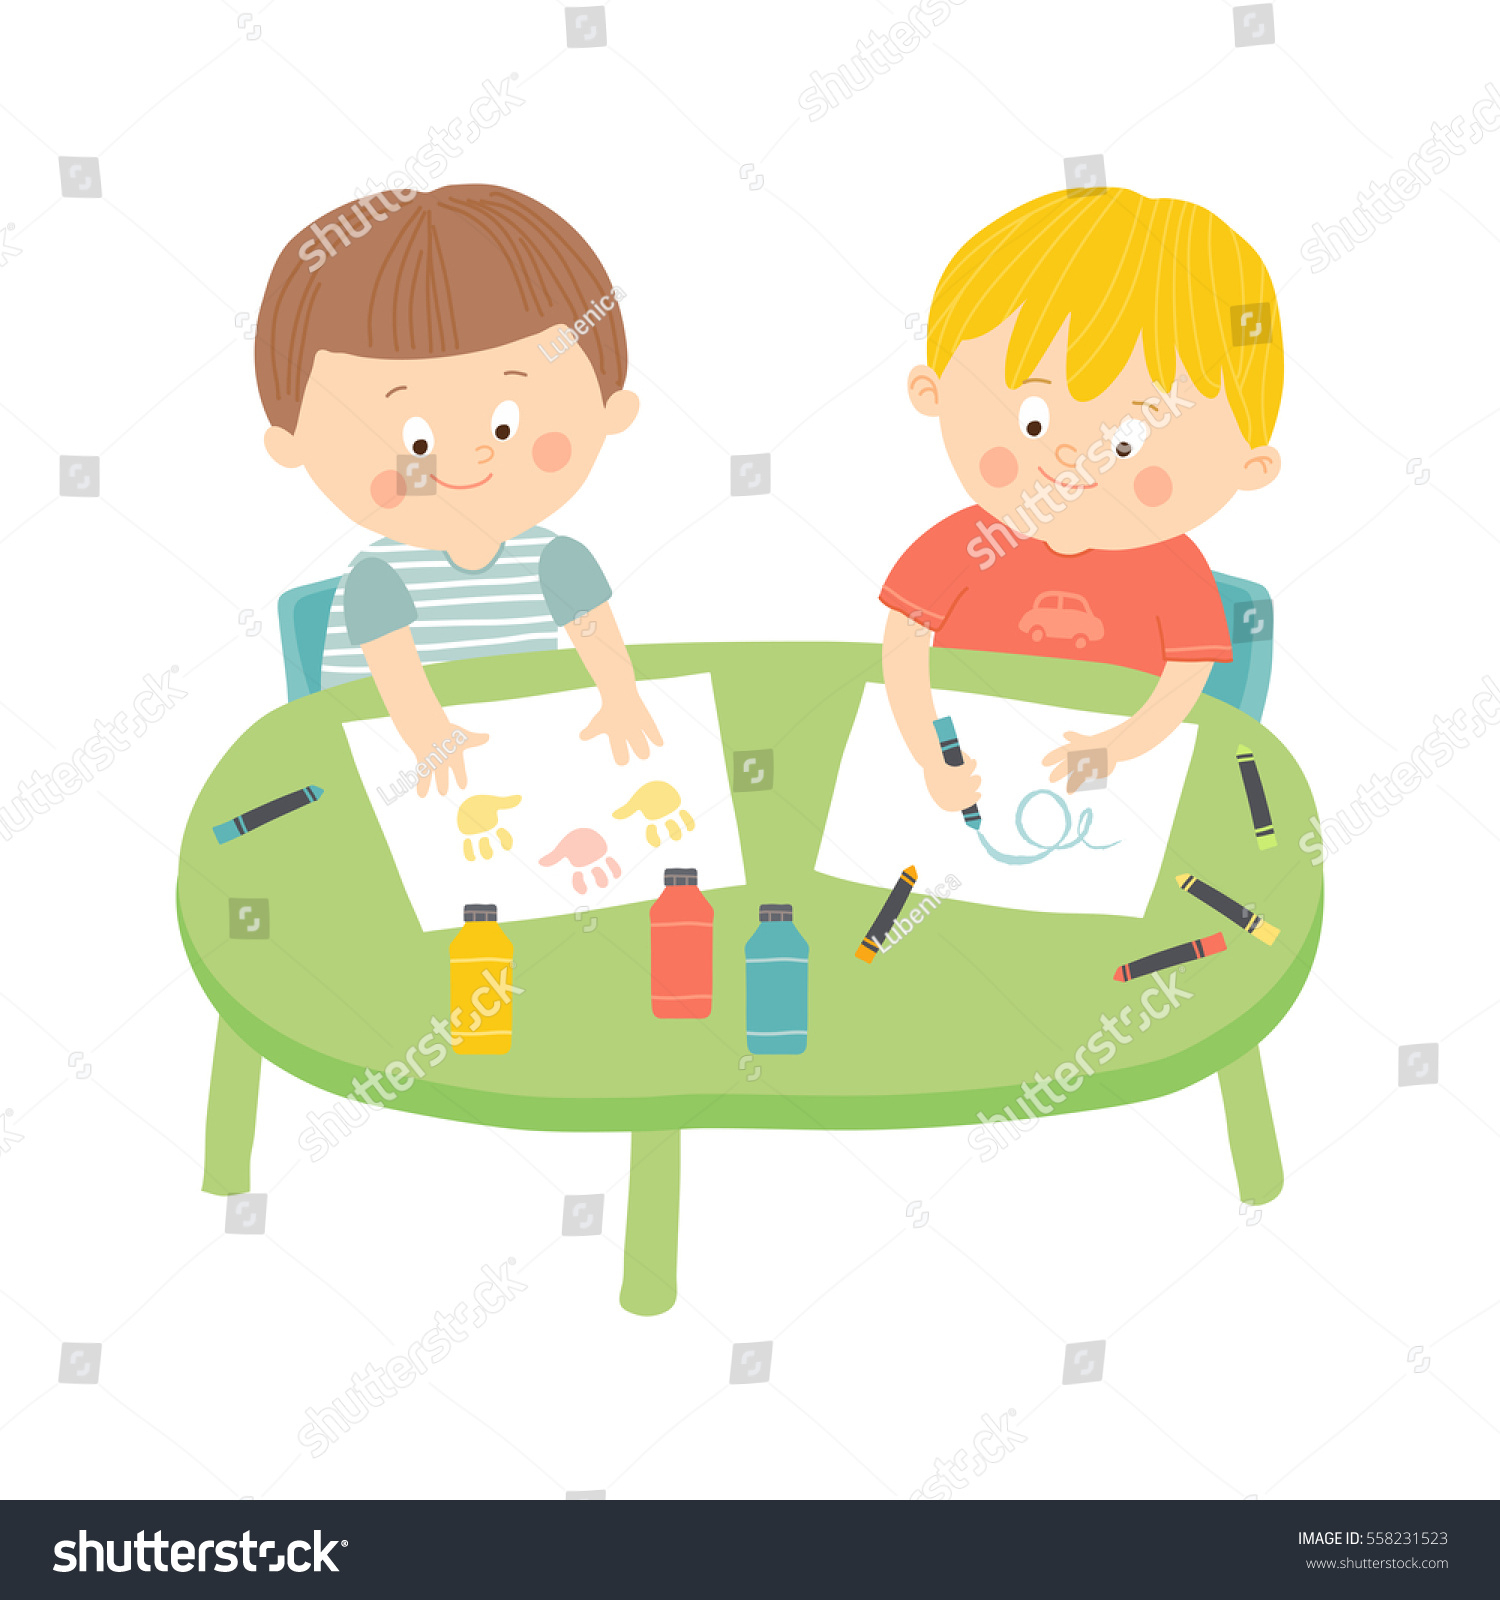 Children Cartoon Drawing at GetDrawings.com | Free for personal use ...